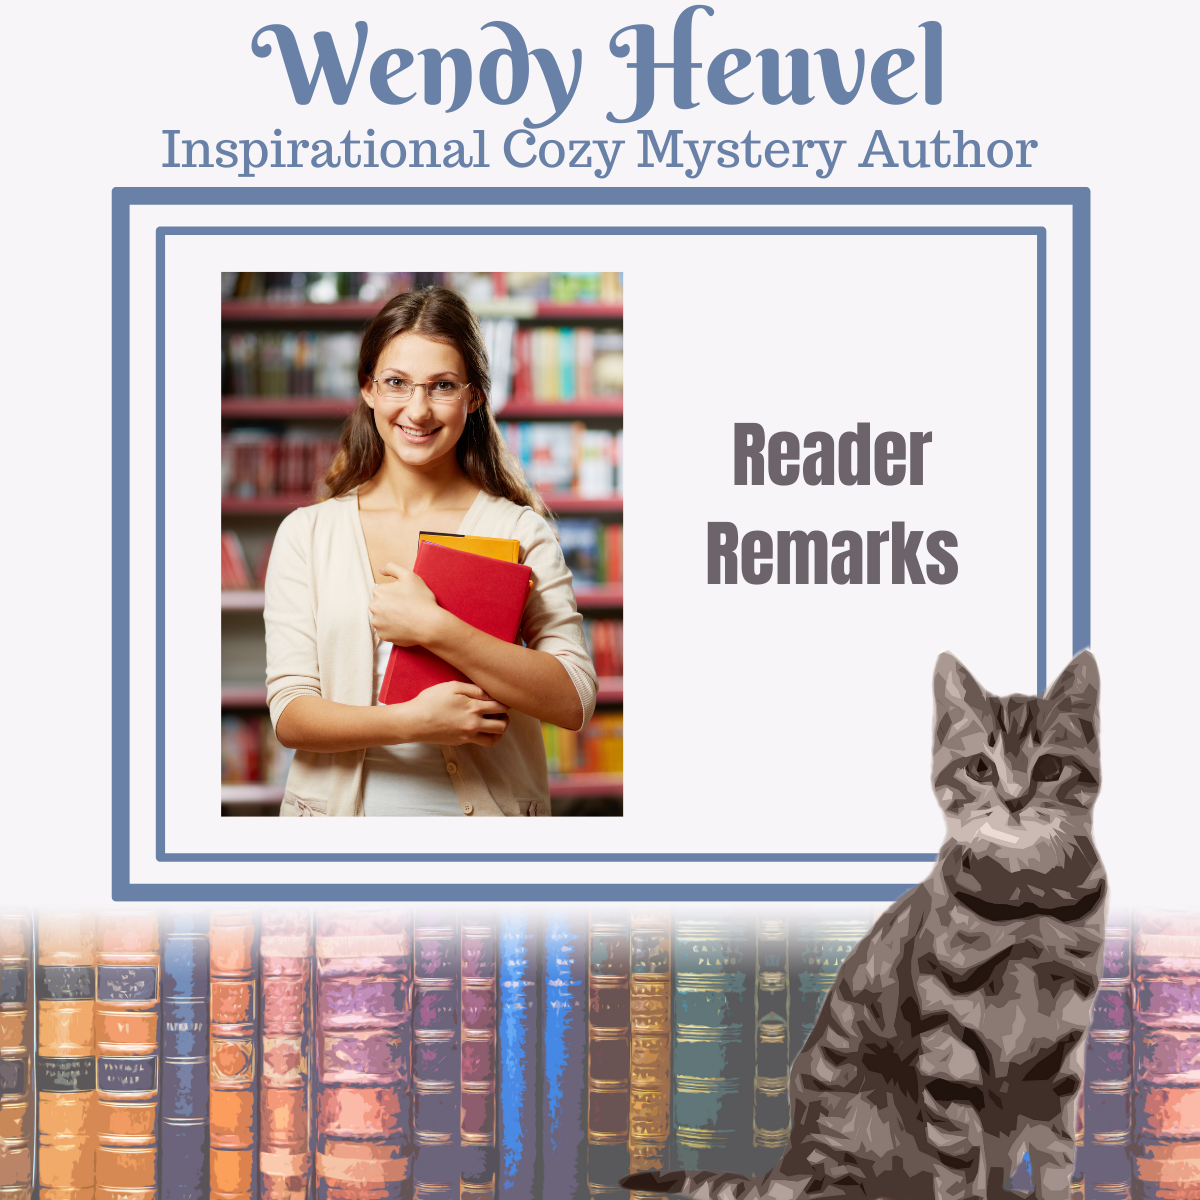 Reader Remarks – Jen from GR